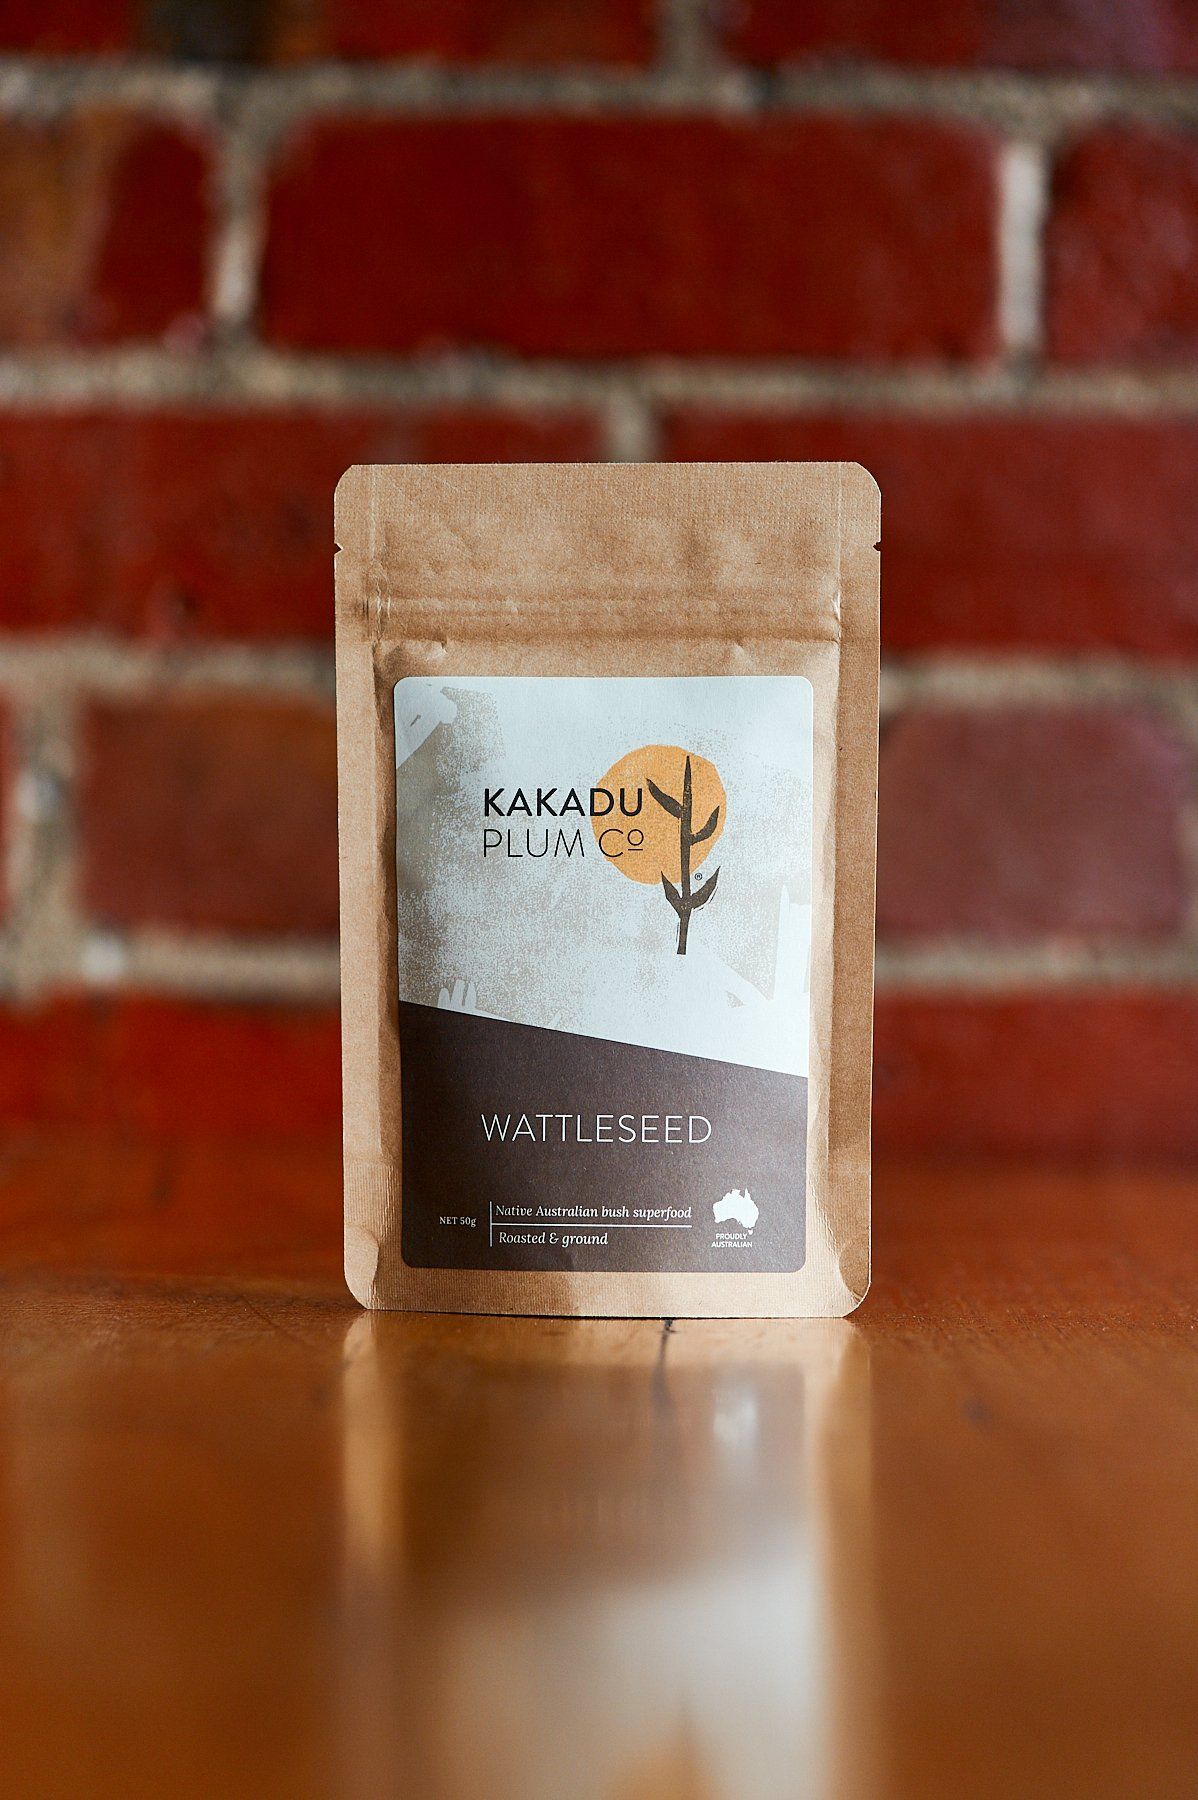 MaxRelief Kakadu Plum Wattleseed - Australian Aboriginal Superfood - Contains Magnesium, Potassium, Calcium, Iron, Selenium and Zinc. Use as a coffee substitute 1.8 oz by MaxRelief (Image #2)